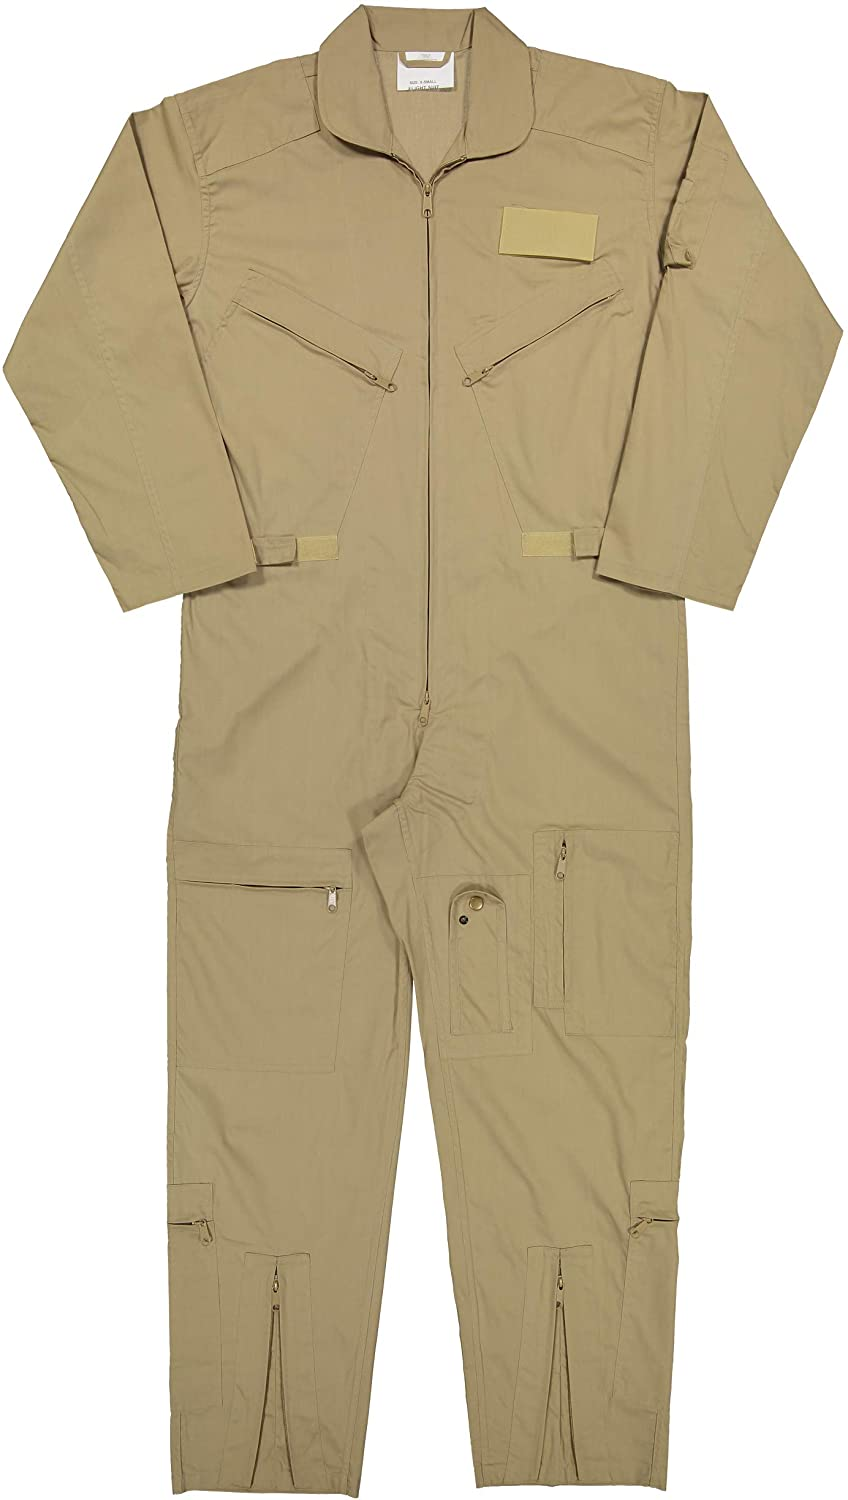 4569d83e573 Amazon.com: Army Universe Air Force Flight Suits, US Military Type  Coveralls, Uniform Overalls/Jumpsuits for Work with Official Pin: Clothing